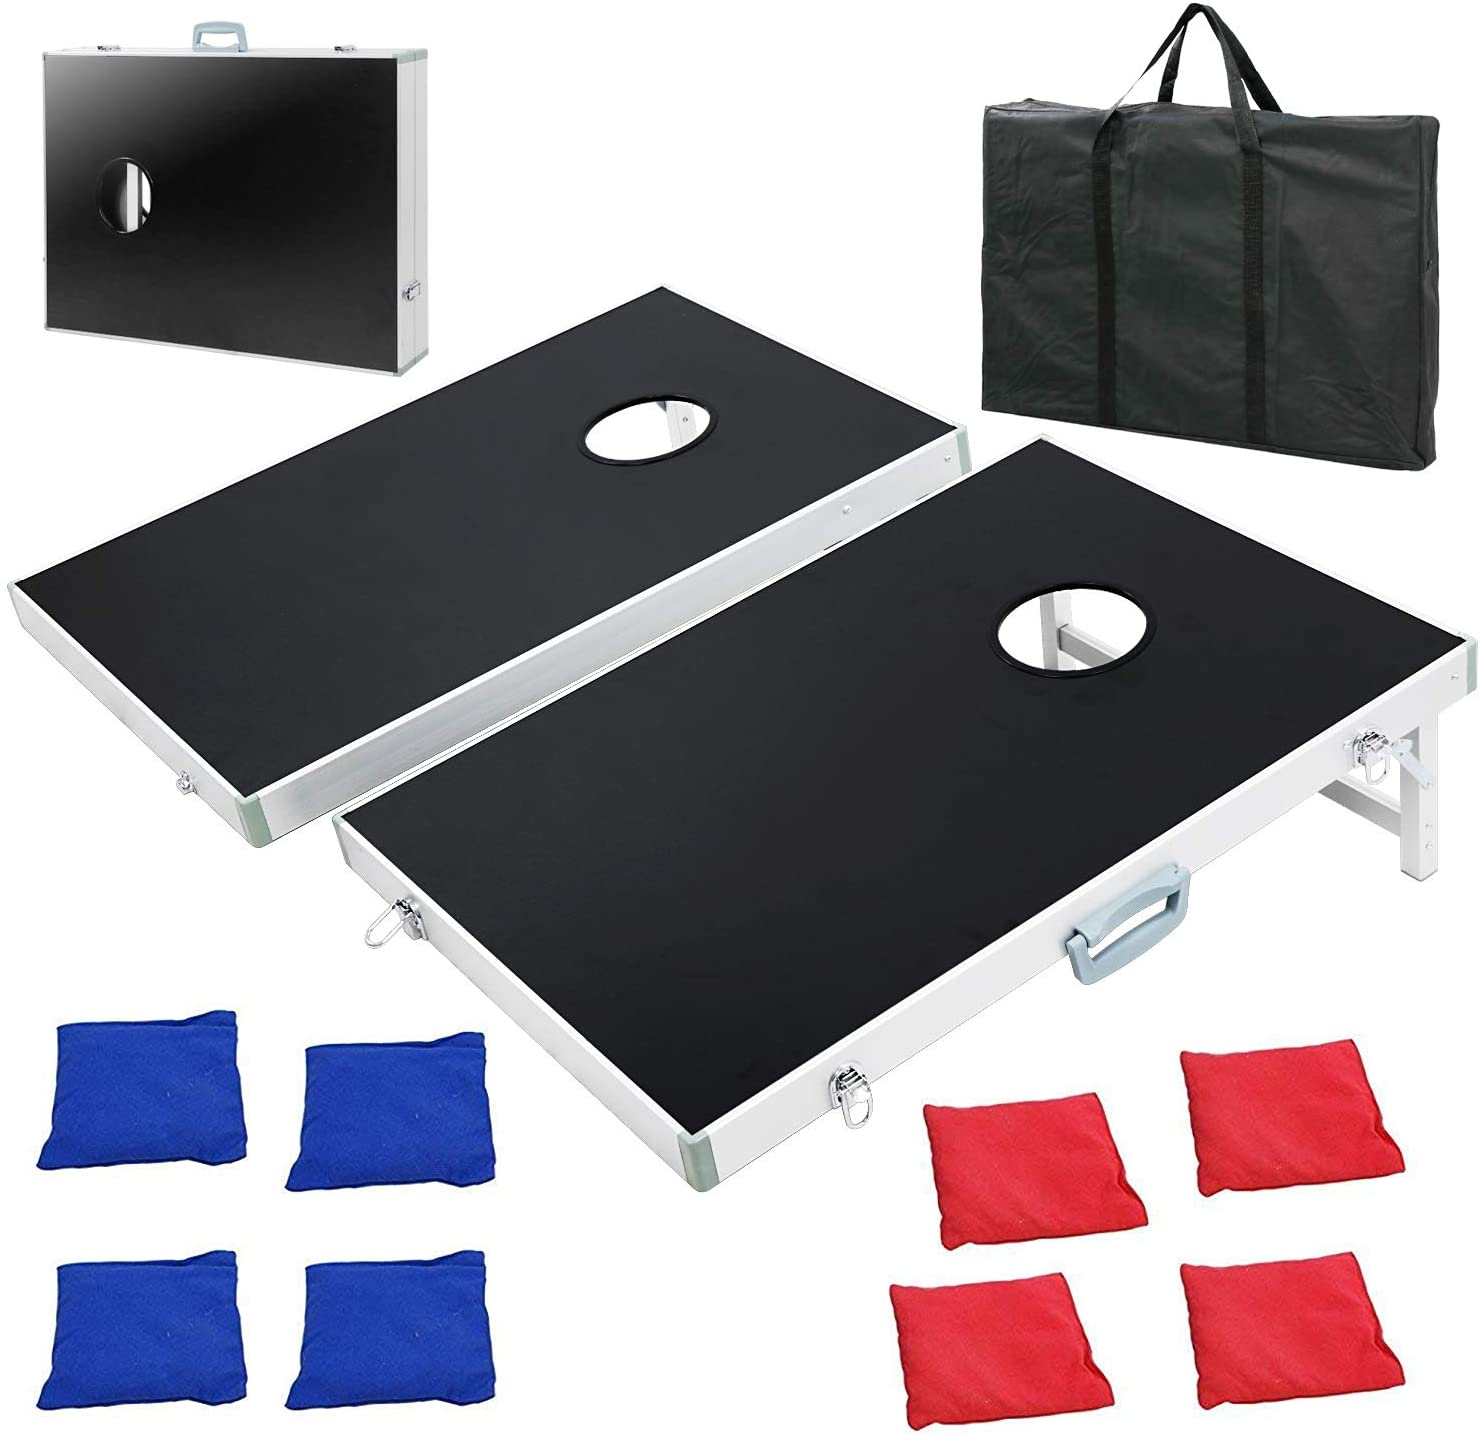 F2C Portable Cornhole Bean Bag Toss Game Set Boards